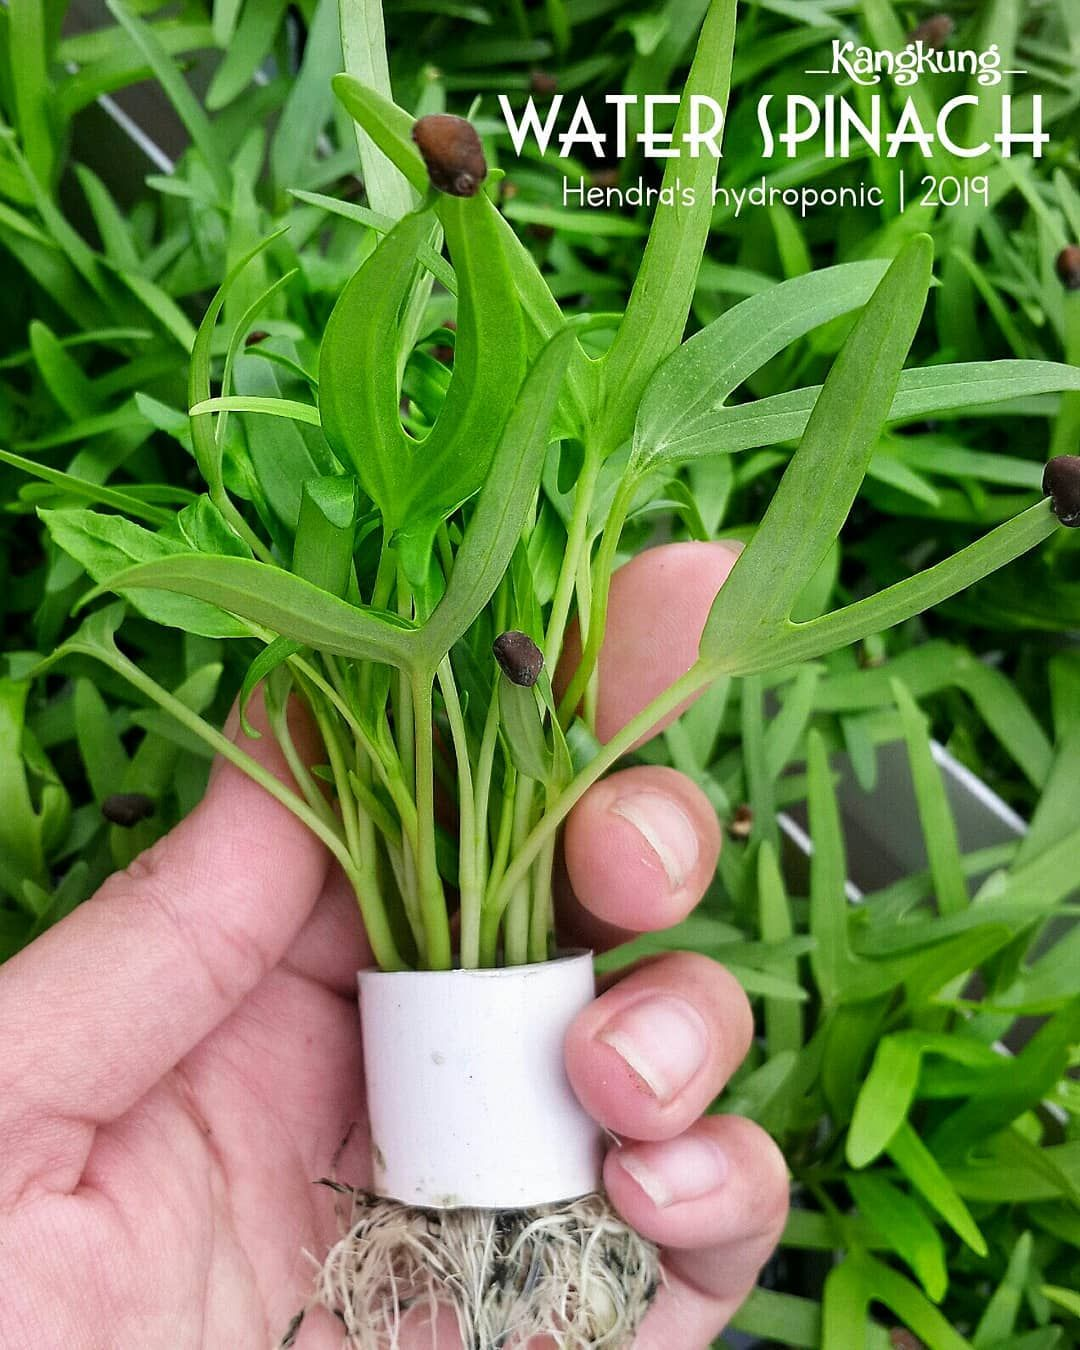 This Is Our Simple Tutorials How To Grow Water Spinach From Seeds And No Rockwool Needed Tak Terasa Usia Water Spinach Hydroponics Hydroponic Gardening